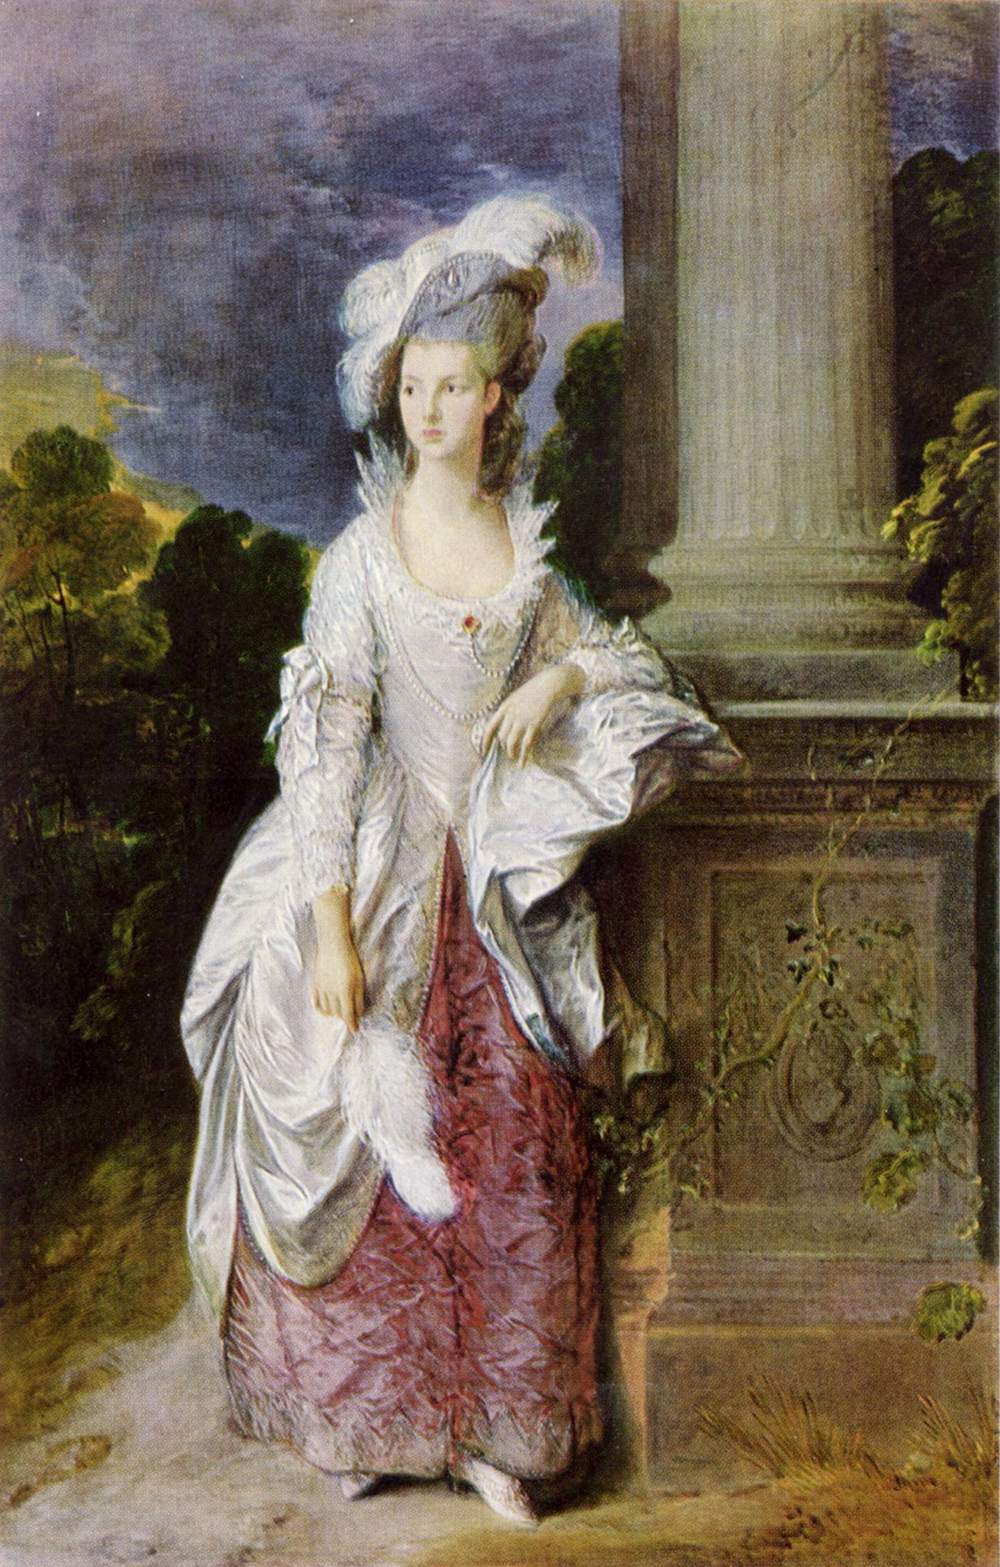 Moved by Love: Inspired Artists and Deviant Women in Eighteenth-Century France.